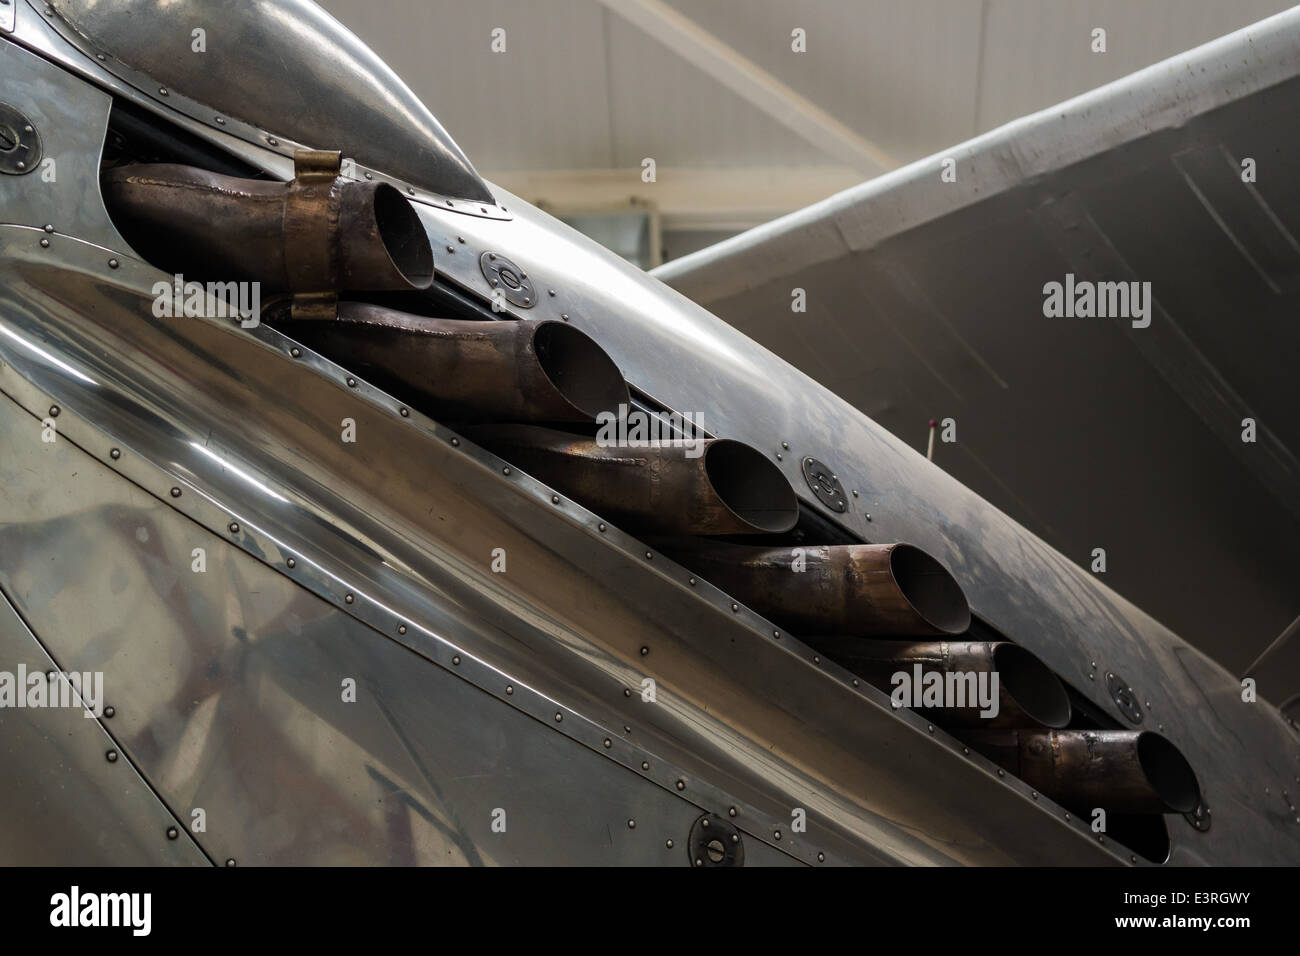 Detail of an exhaust on an aircraft fuselage on display at Shuttleworth Aerodrome, UK - Stock Image